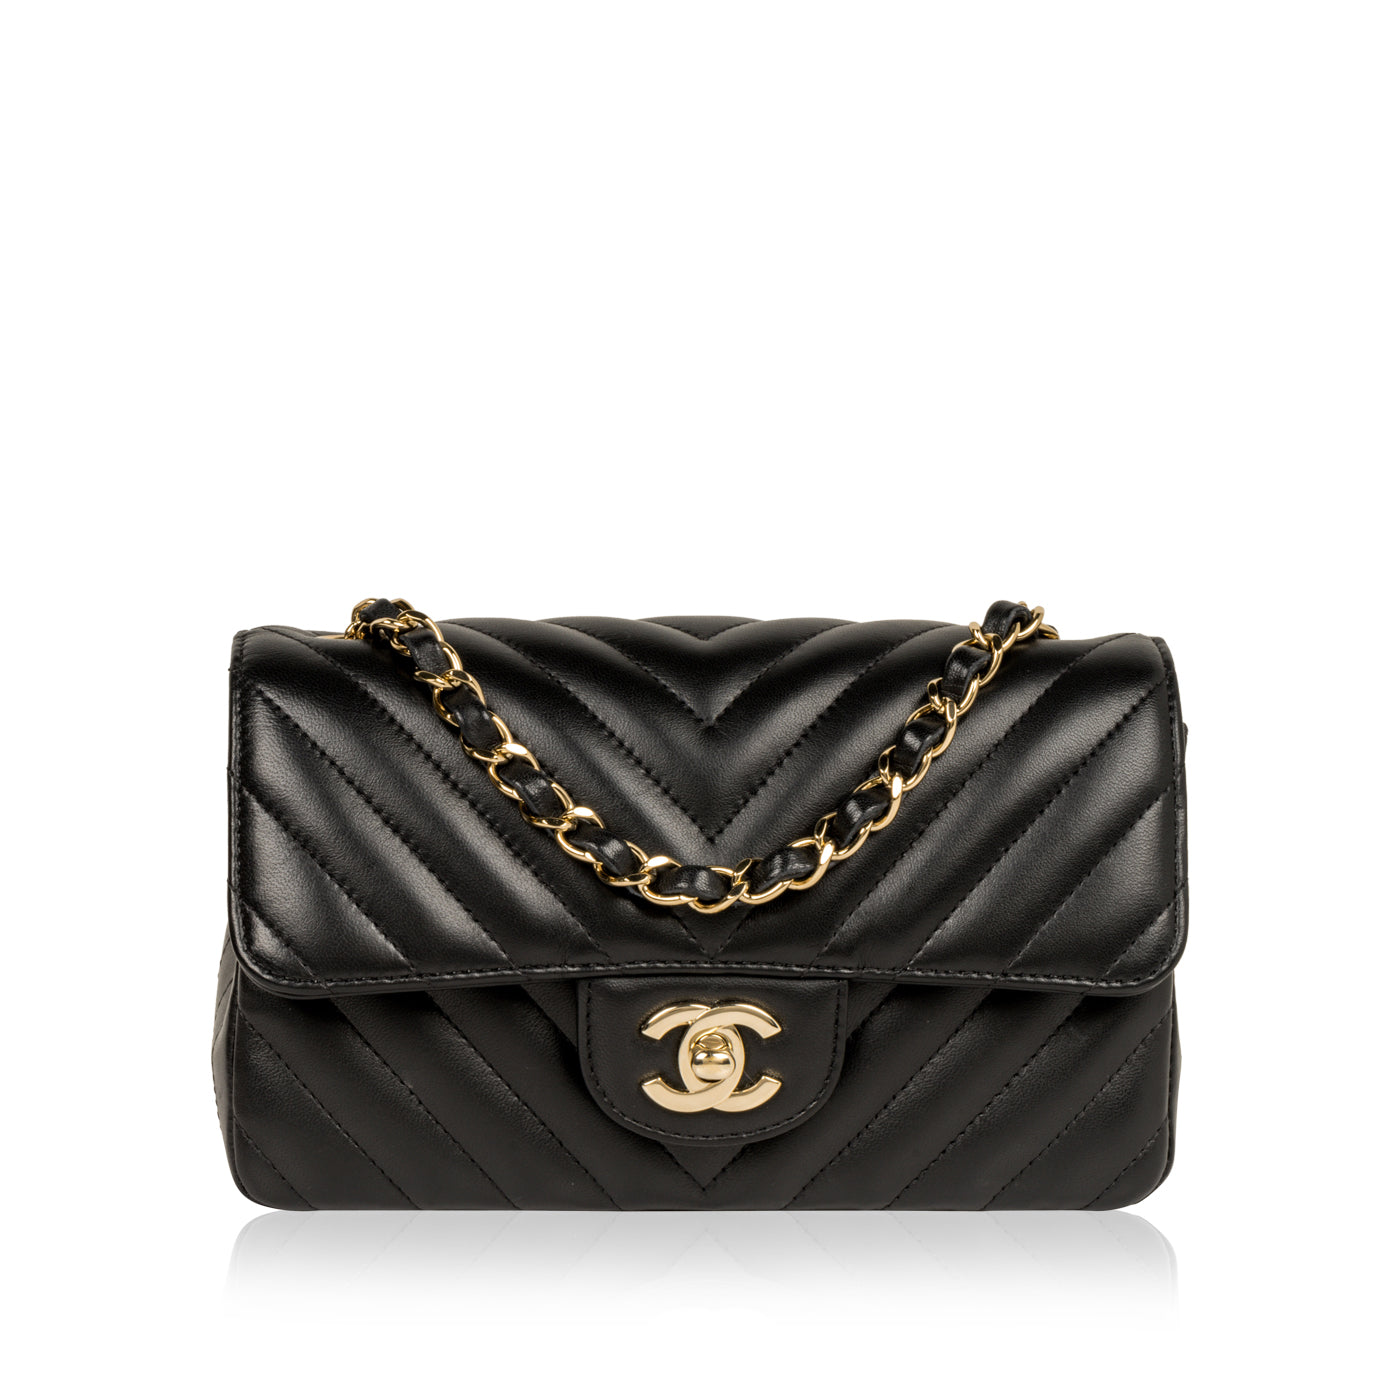 eb3bfd601c703a Chanel - Mini Square Classic Flap Bag - Black Caviar - GHW | Bagista